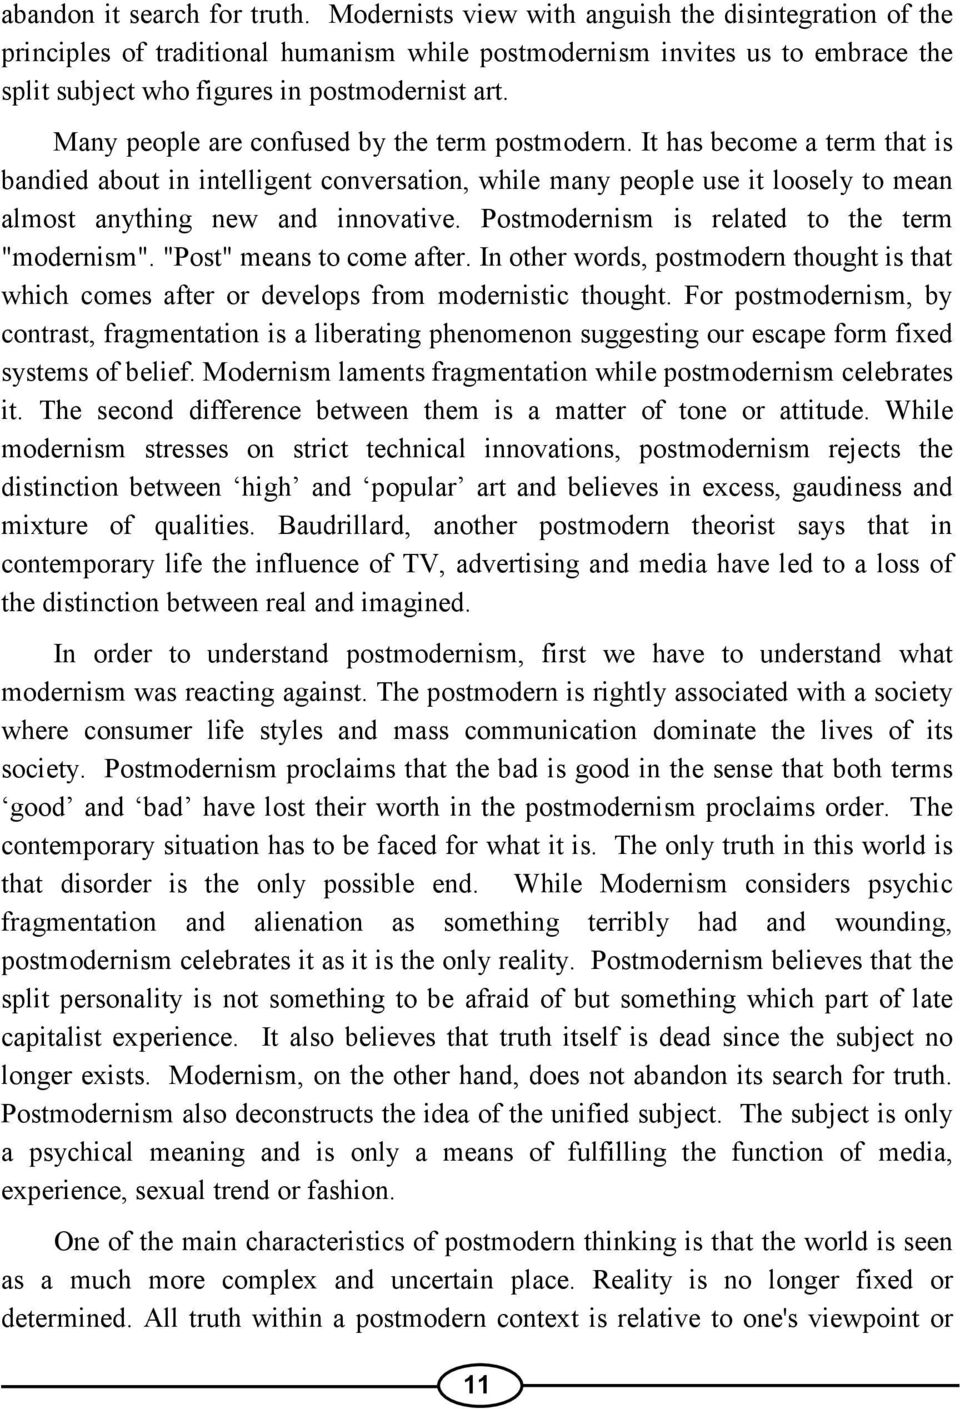 essays on modernism and postmodernism Modernism, postmodernism  the argument about the transition between modernism and postmodernism in pop music can be seen as the beatles in the  related essays.